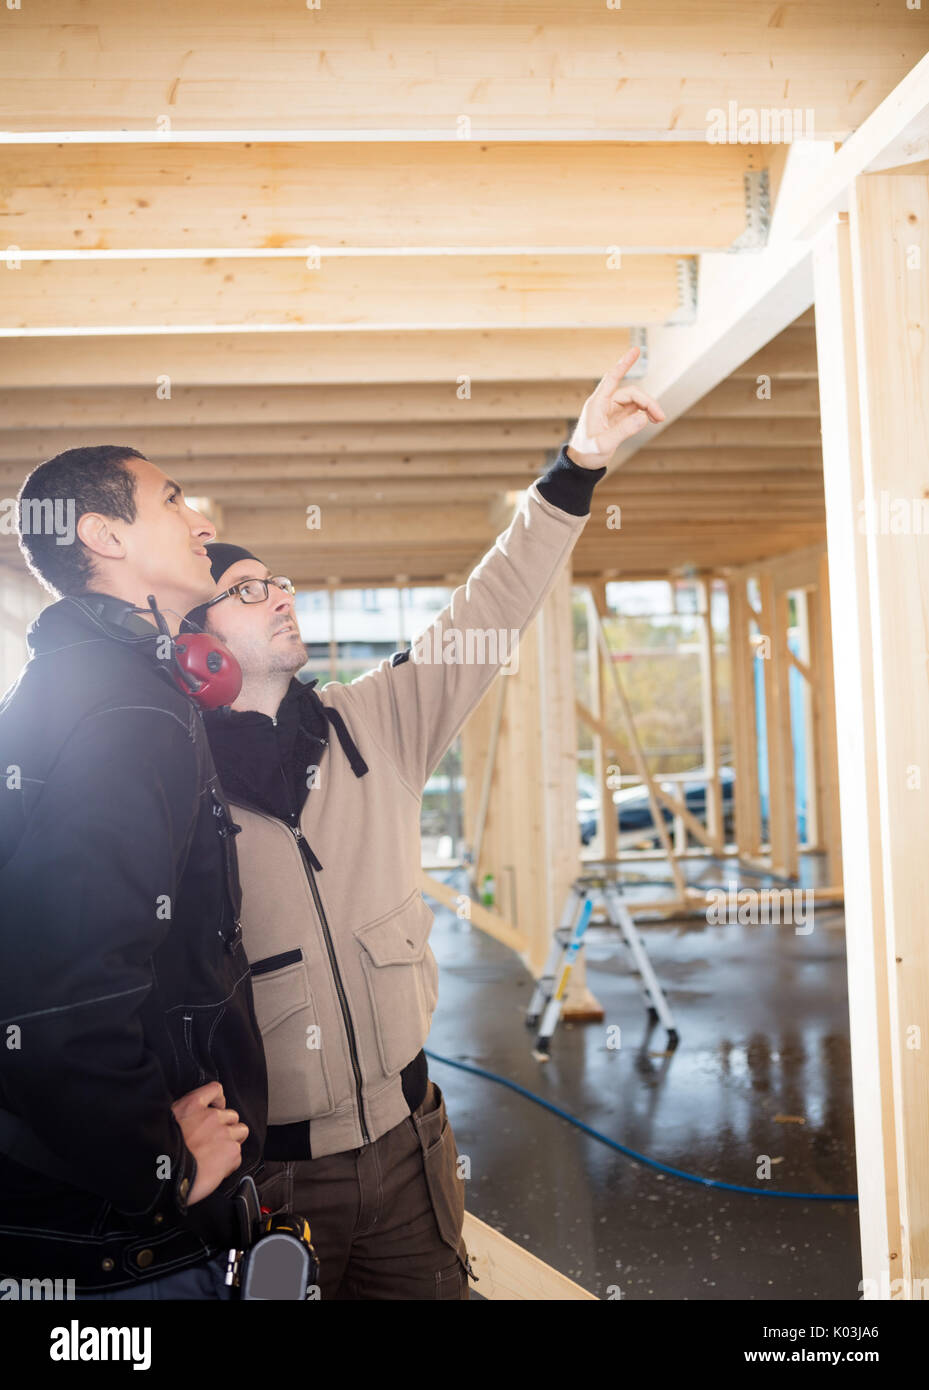 Carpenter Showing Wooden Roof To Colleague At Site - Stock Image